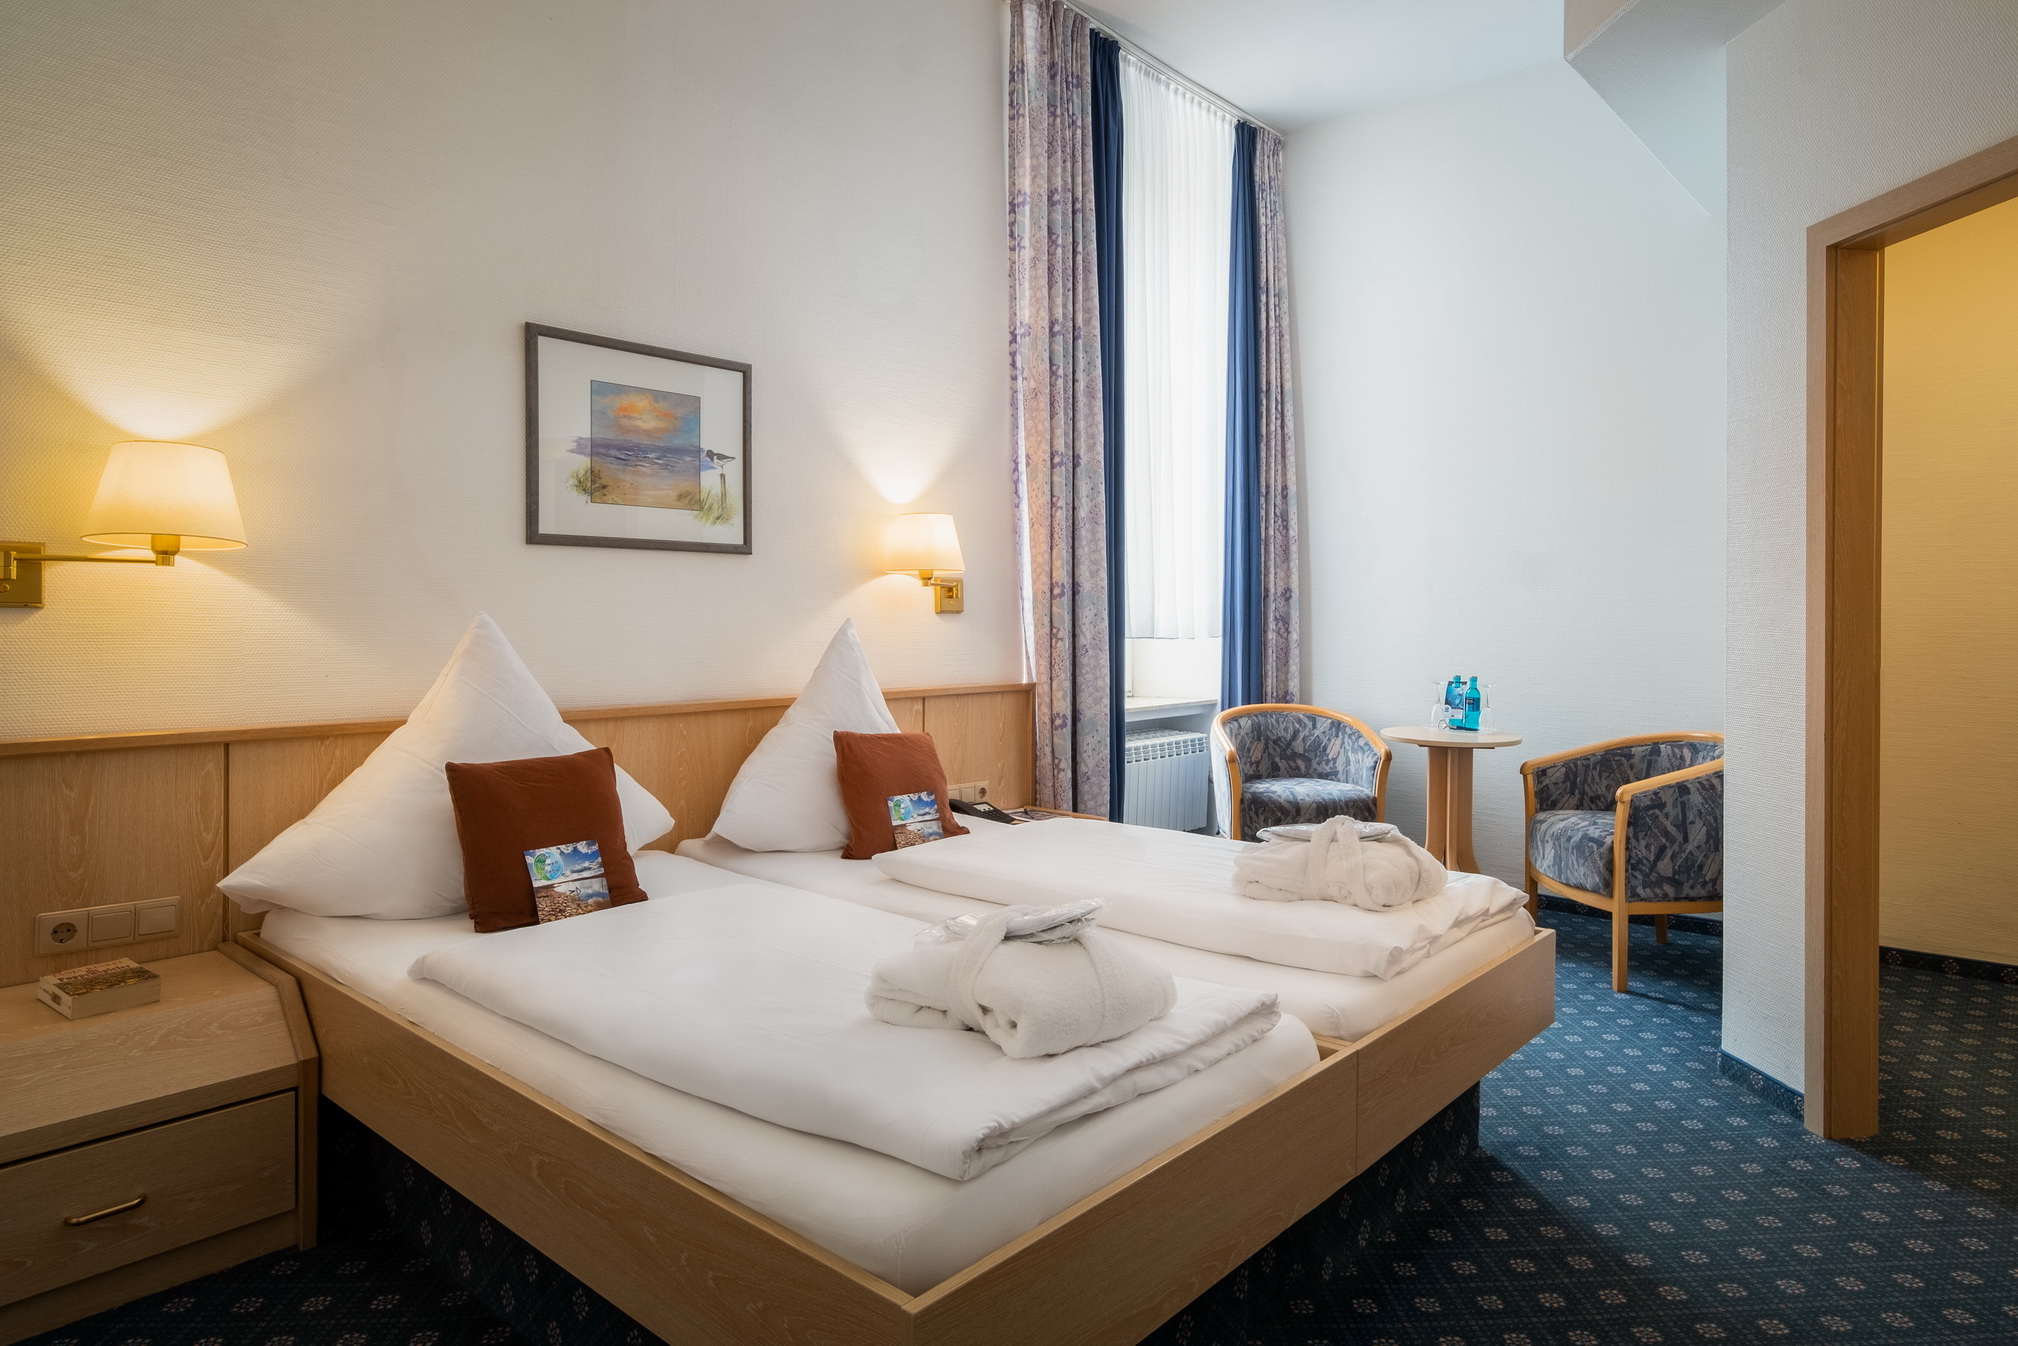 Double room small inner courtyard